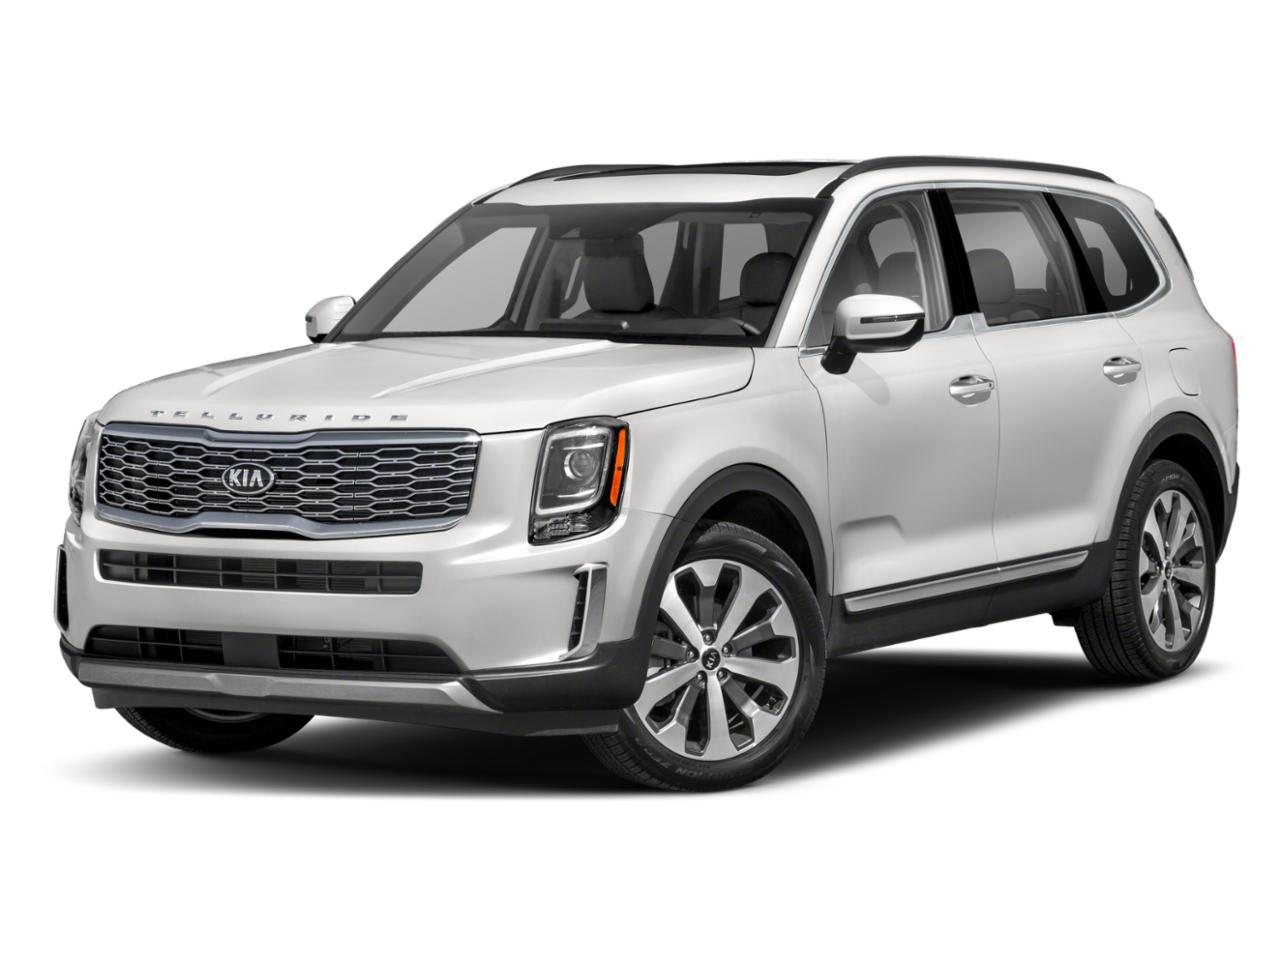 2021 Kia Telluride Vehicle Photo in Oshkosh, WI 54904